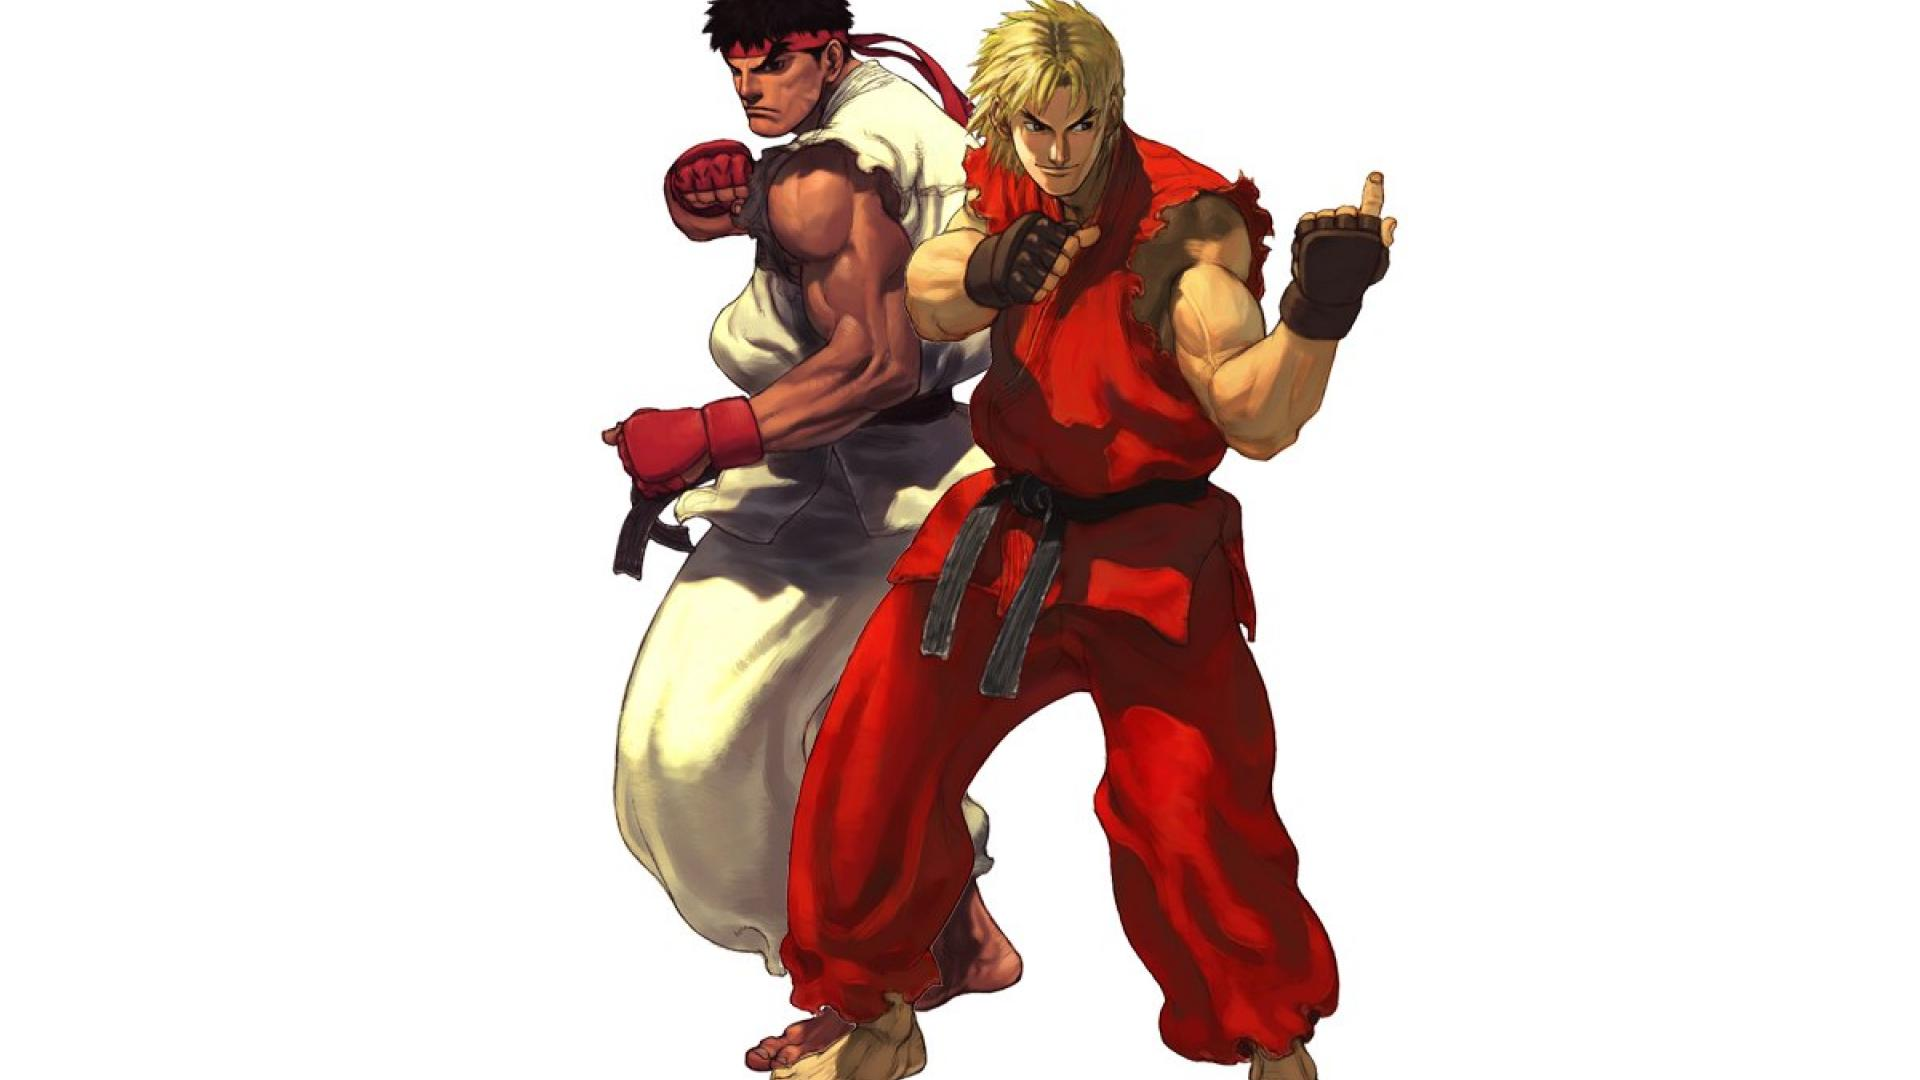 usgamer community question: who's your favorite fighting game